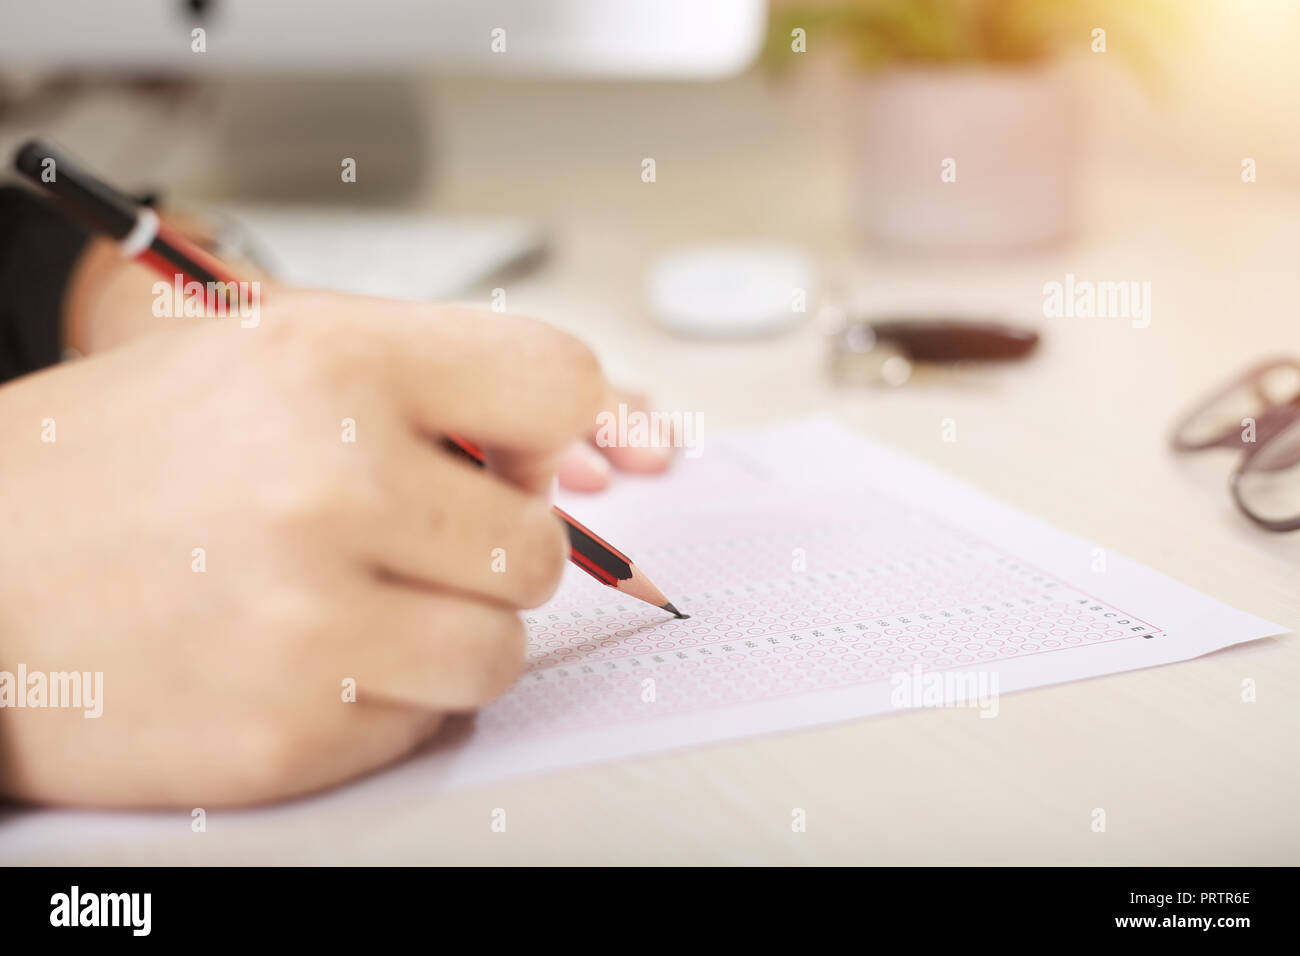 Picture of fill omr sheet with pencil. - Stock Image